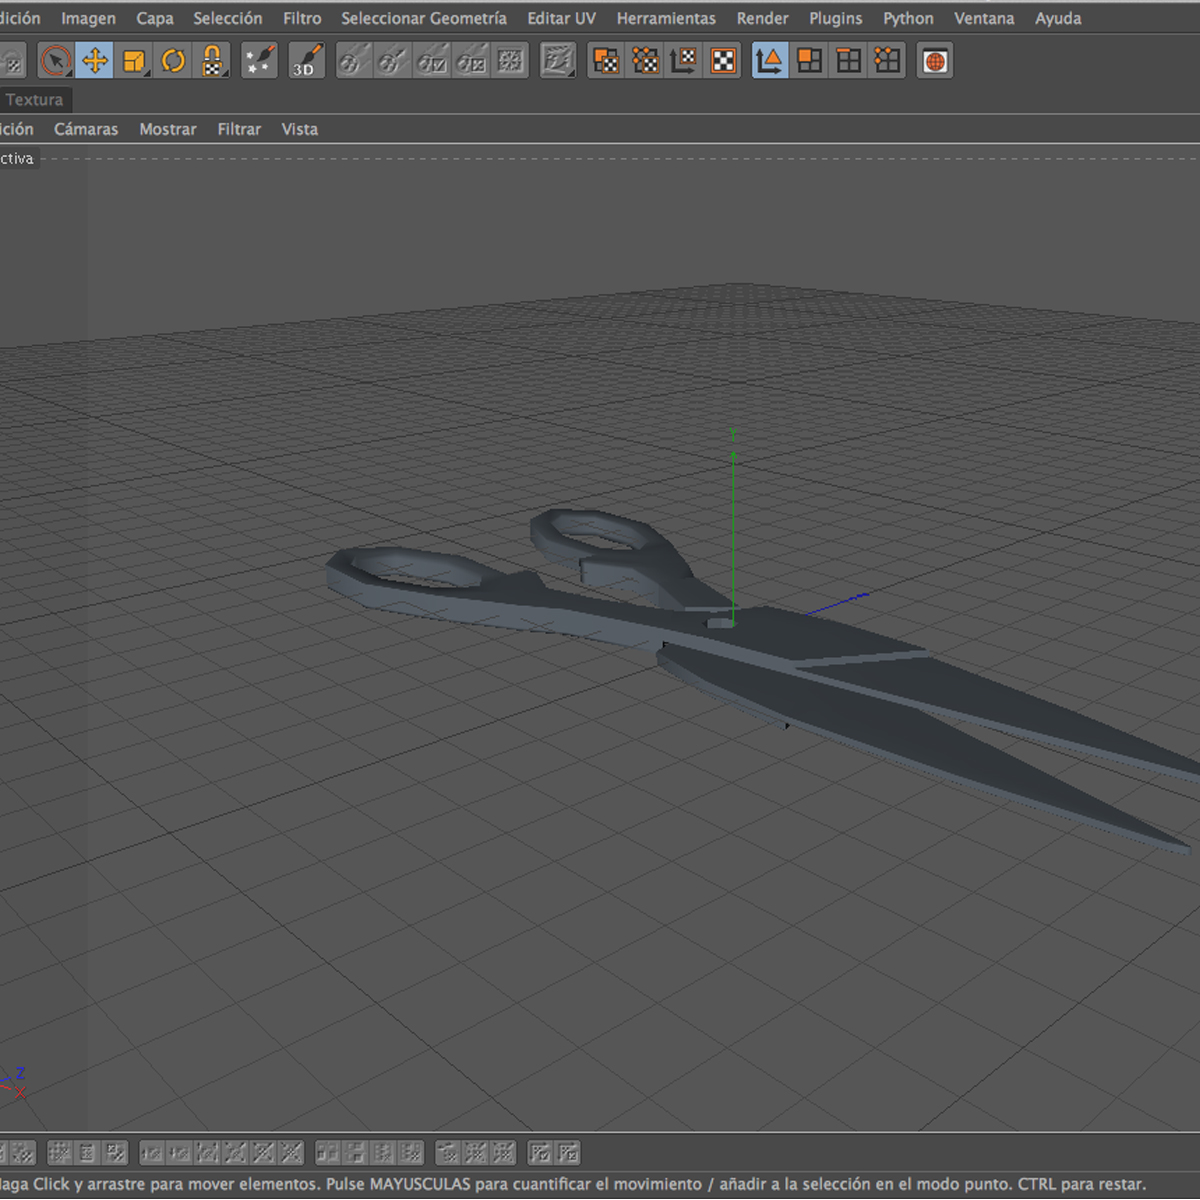 scissors v3 3d model 3ds max fbx c4d ma mb obj 159108